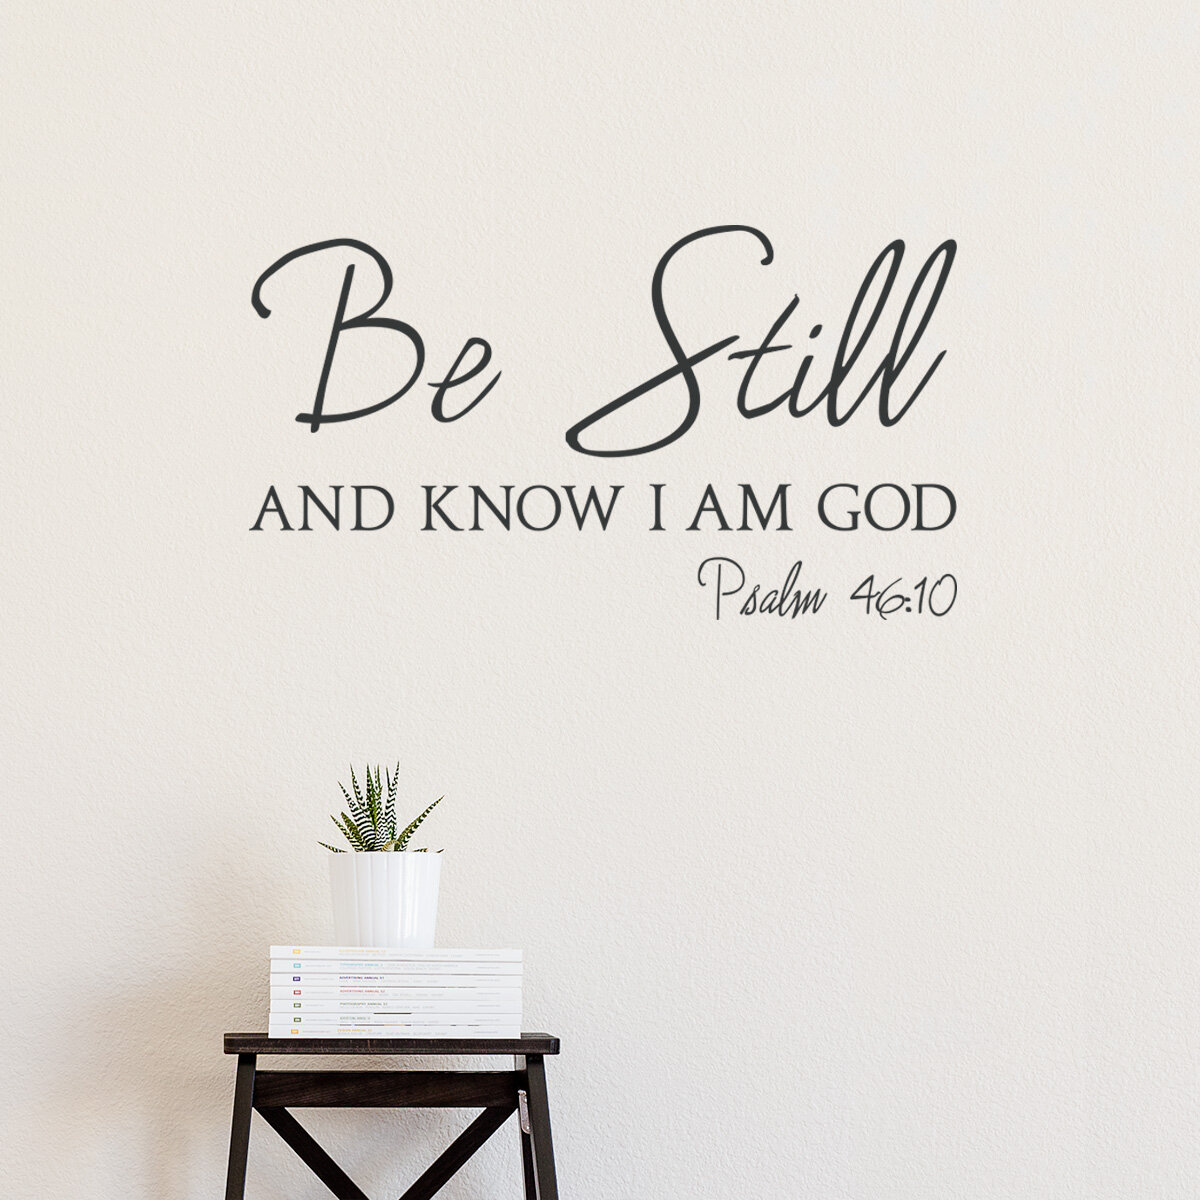 Wallums Wall Decor Psalm 4610 Be Still And Know I Am God Wall Decal